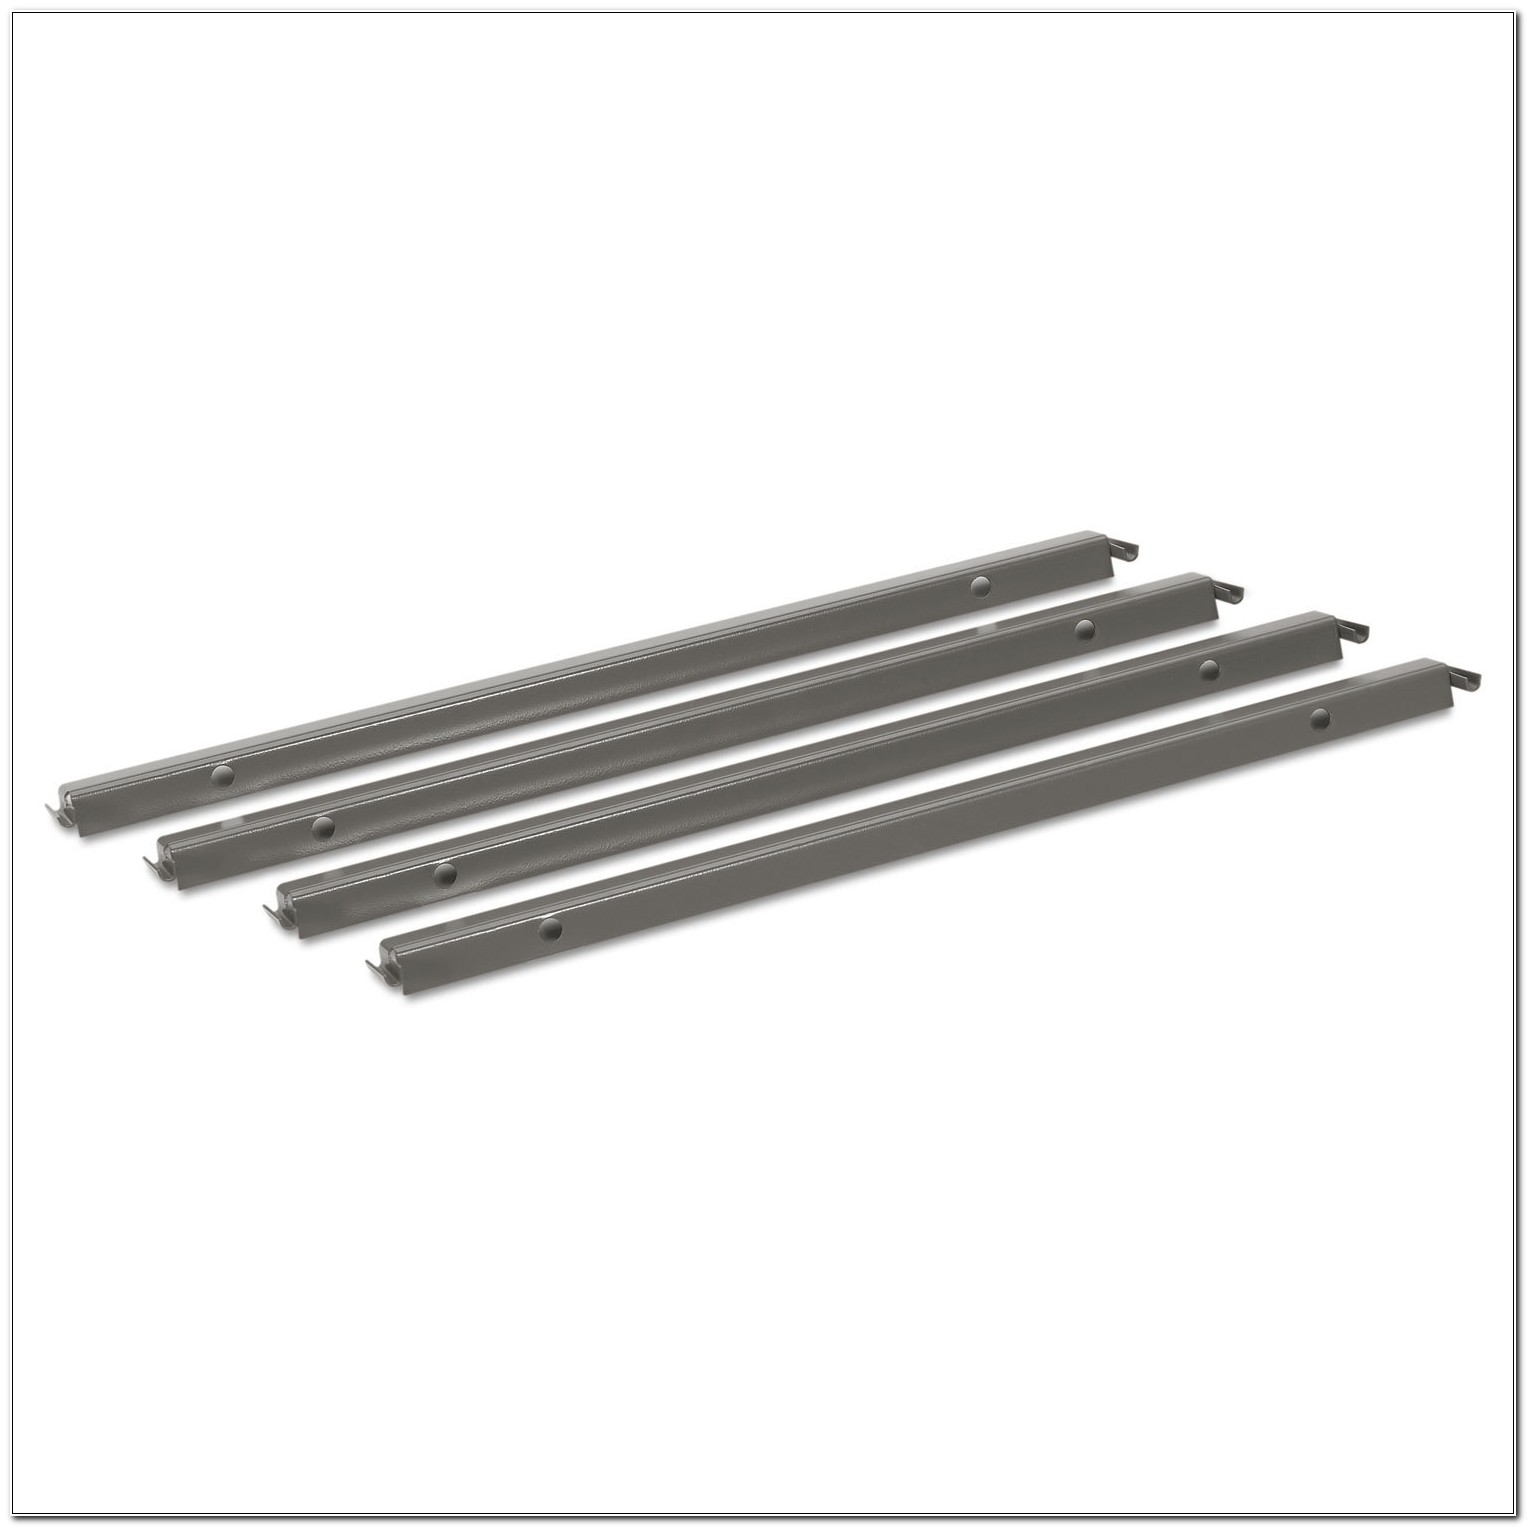 Hon Lateral Filing Cabinet Rails